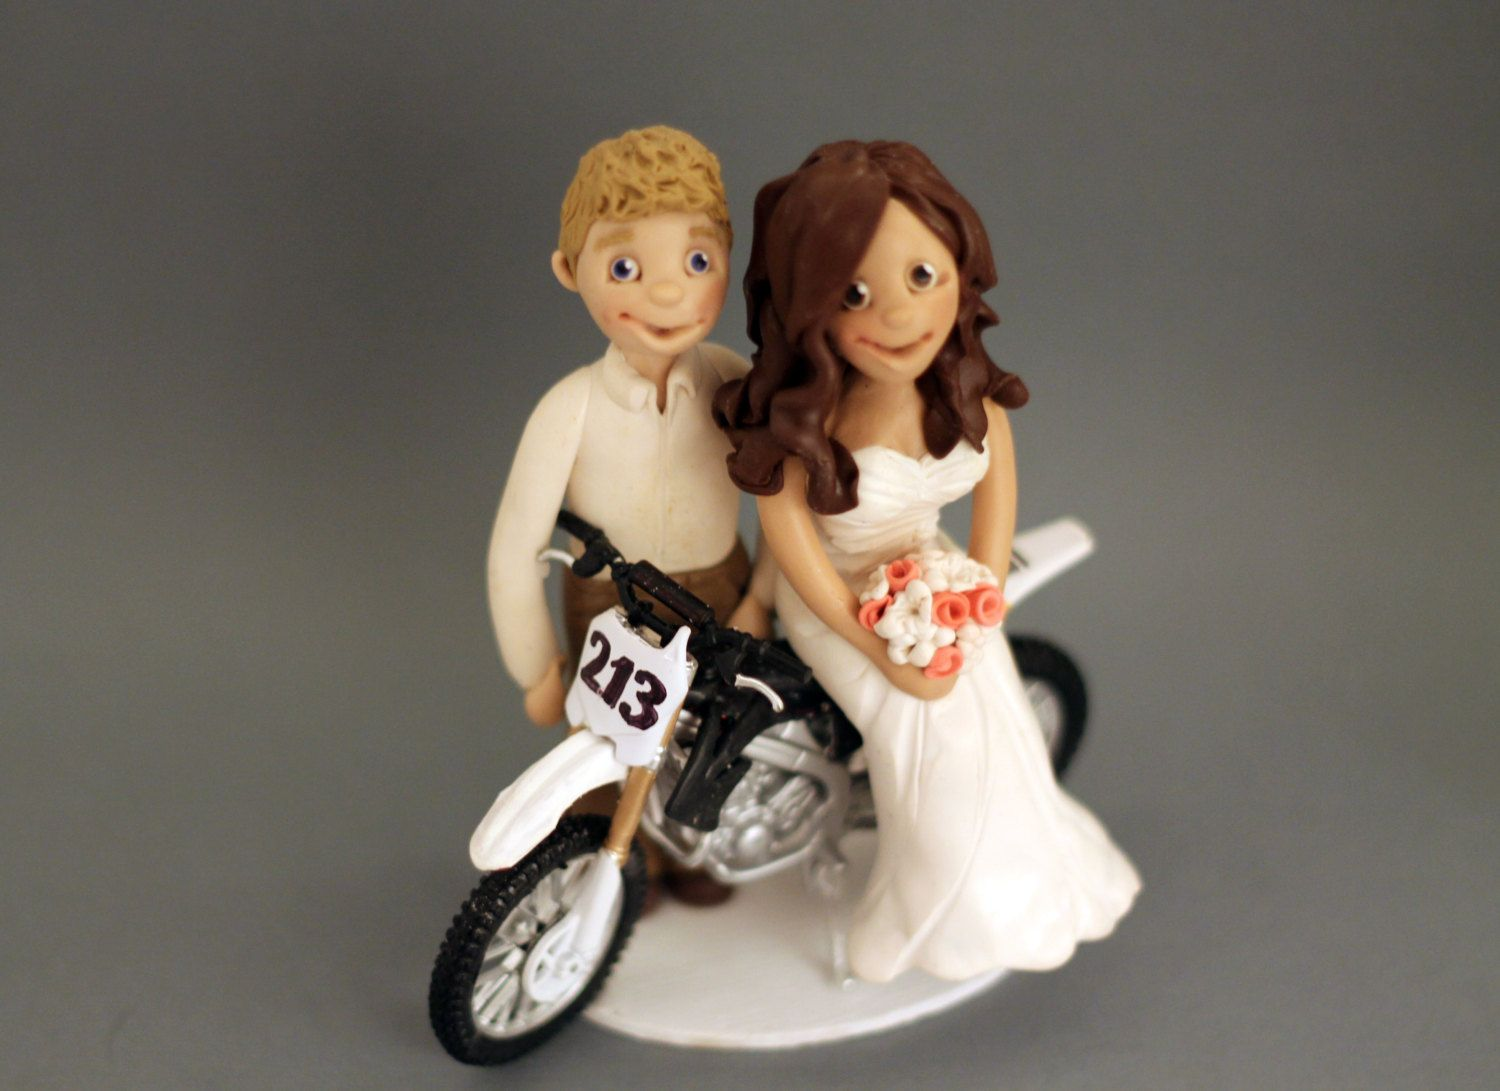 Custom+dirtbike+wedding+cake+topper++by+cherryredtoppers+on